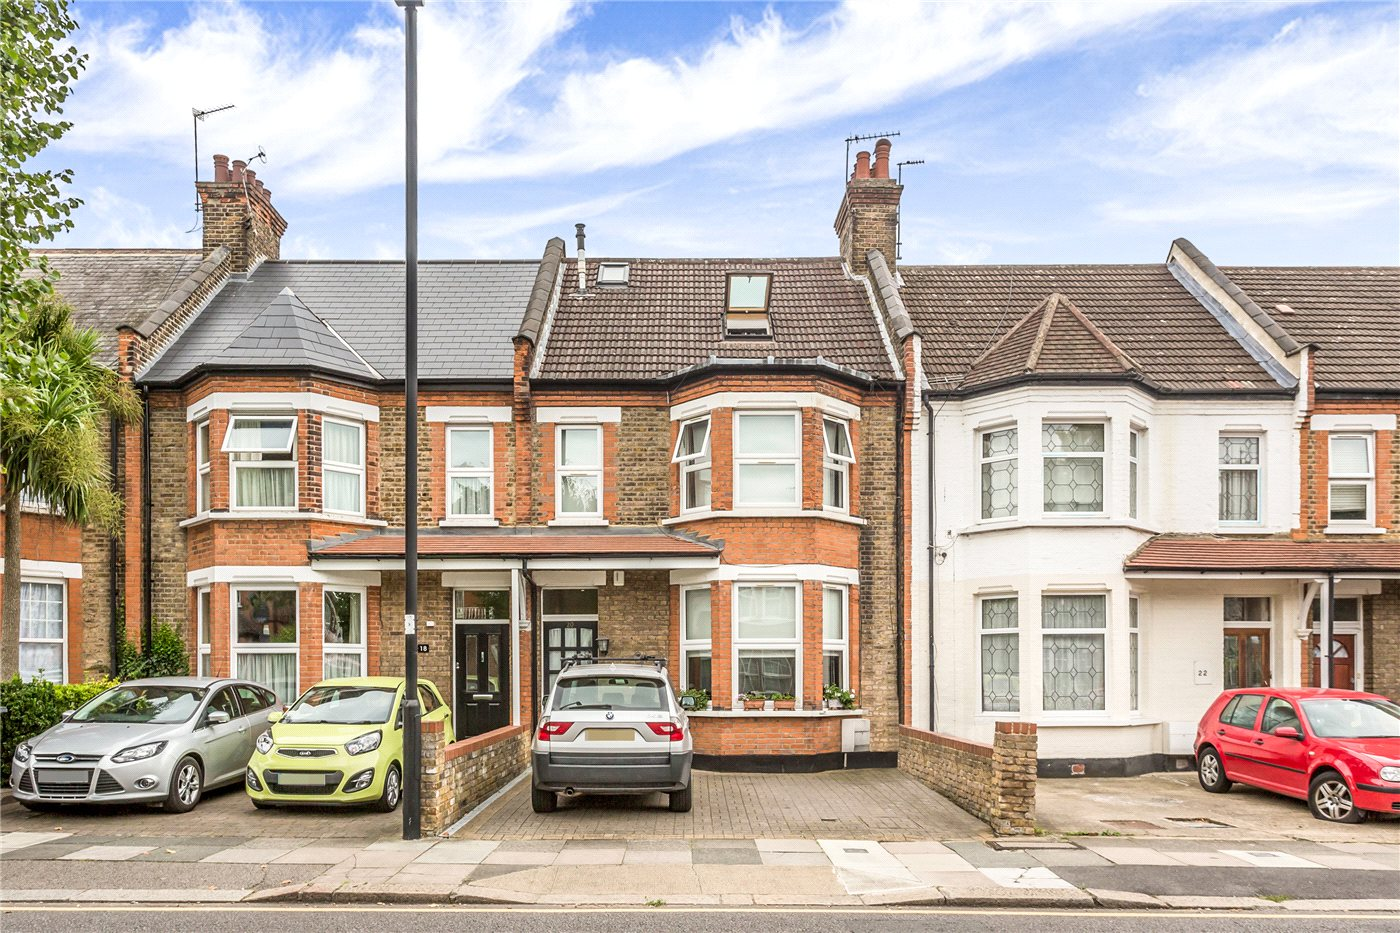 5 Bedrooms Terraced House for sale in St. Marks Road, Enfield, EN1